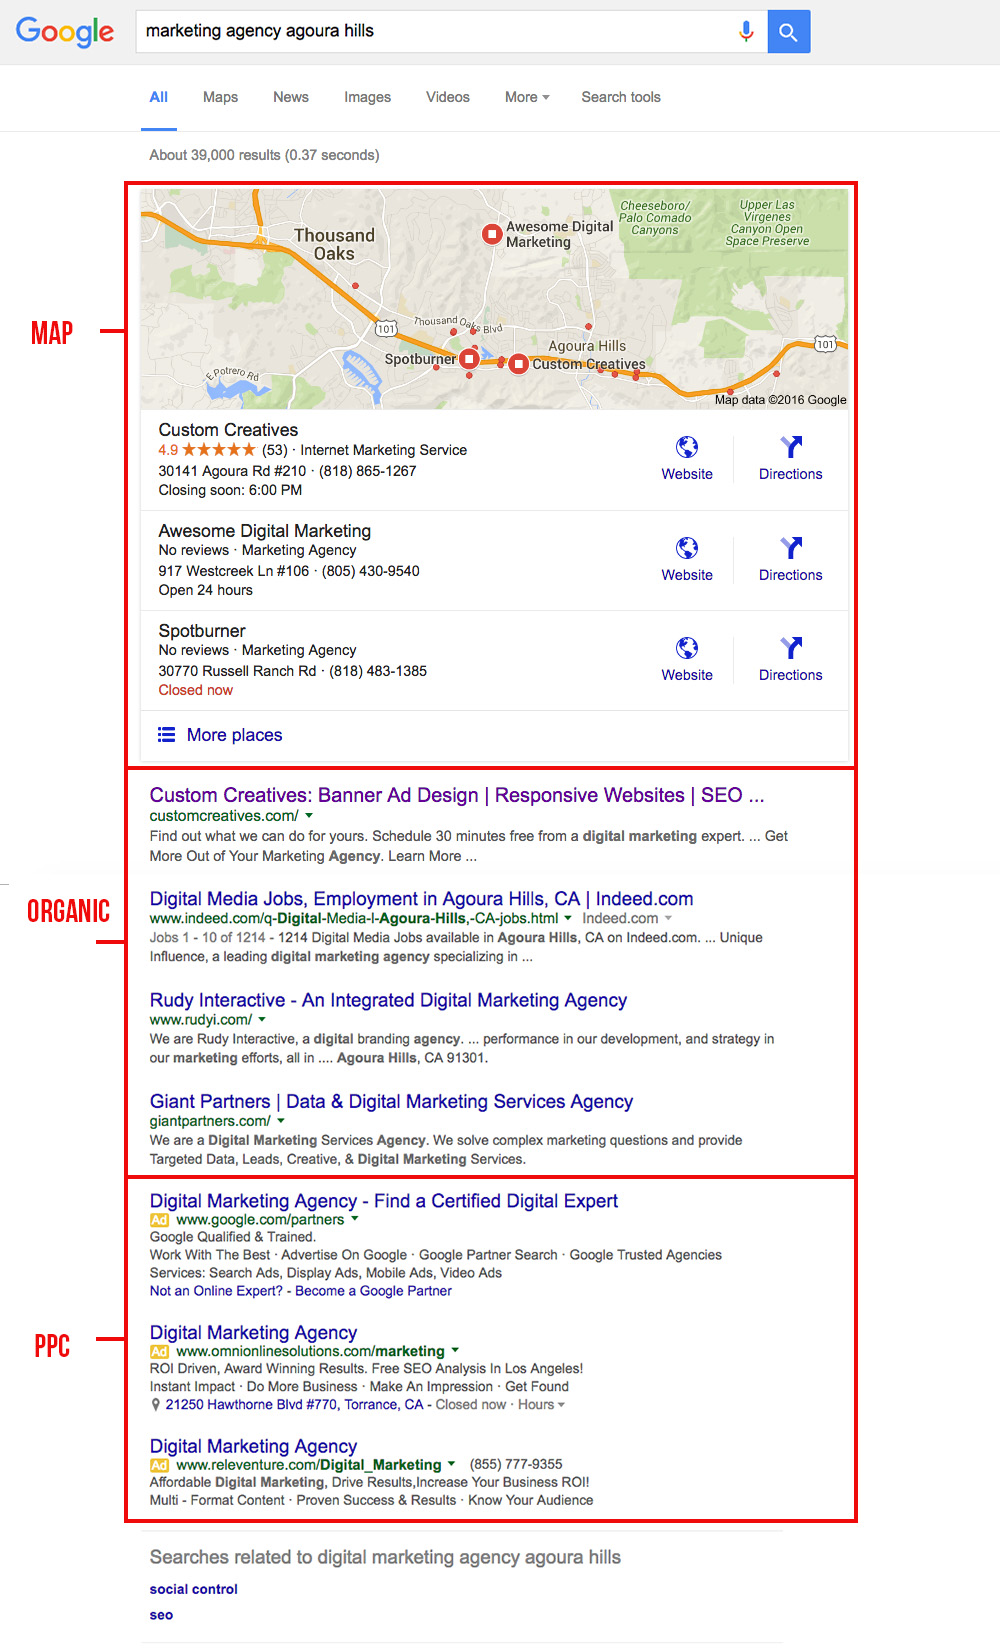 Google Search Results - Internet Marketing